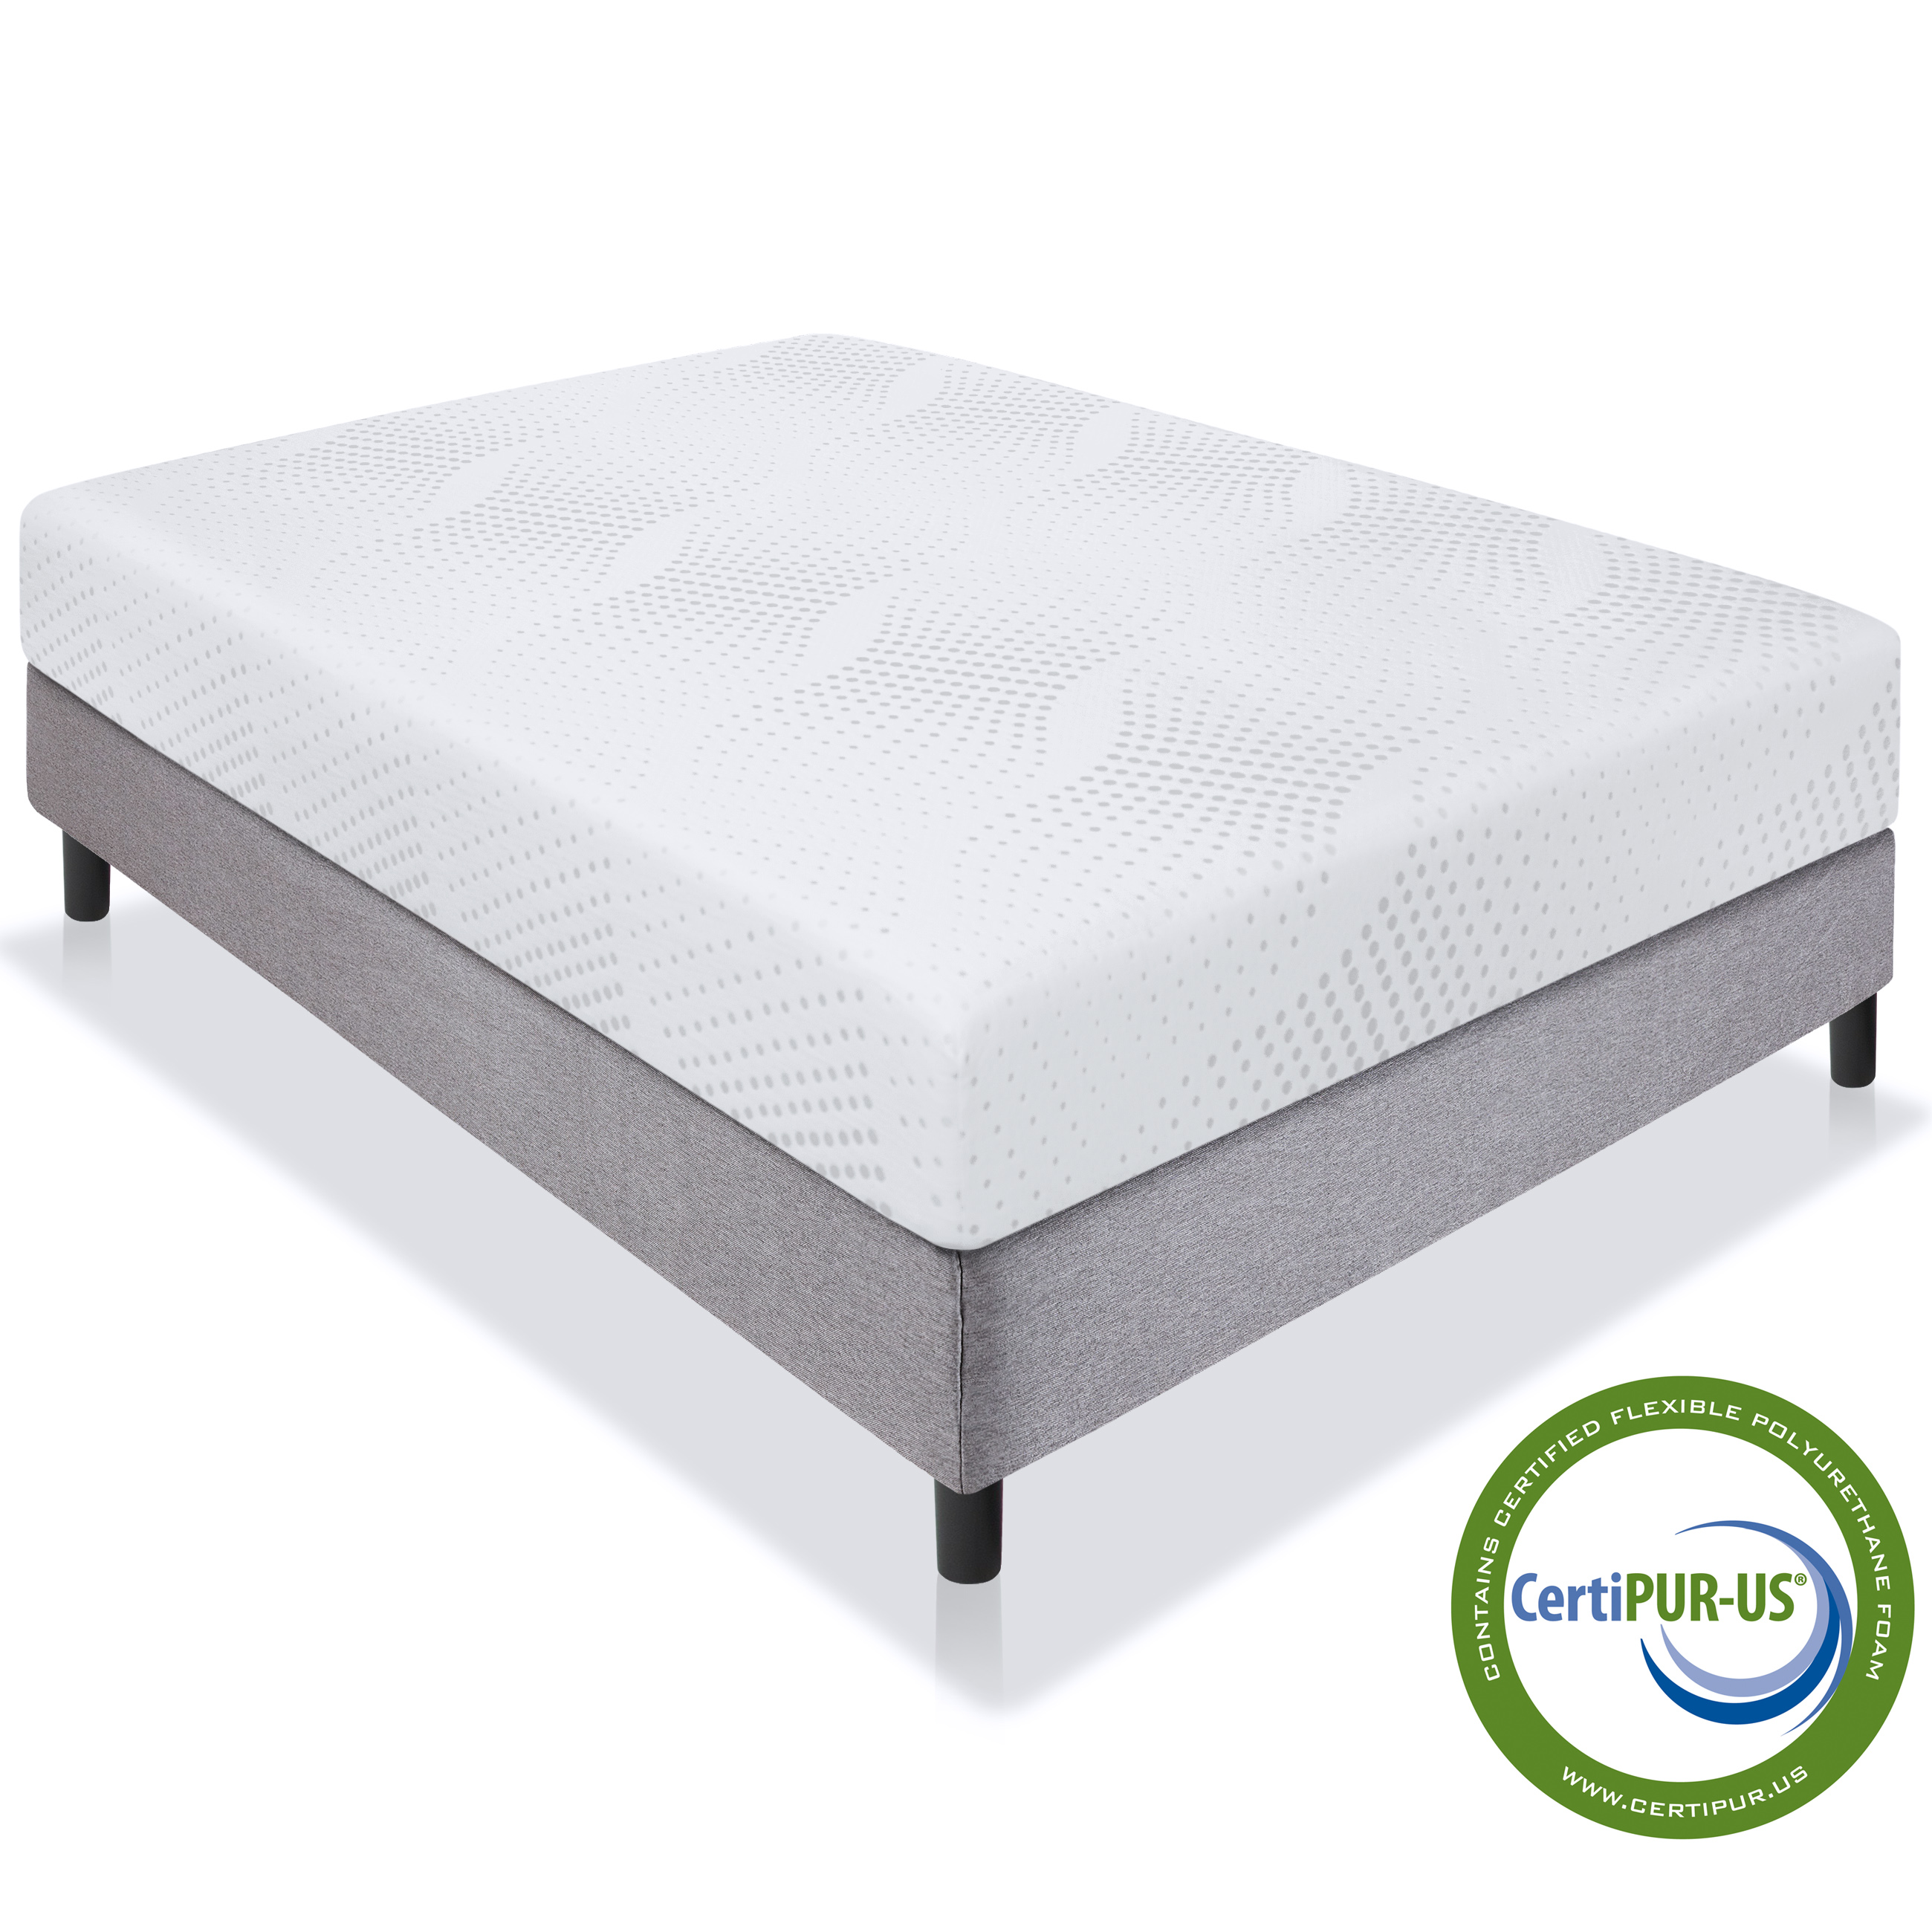 Best Choice Products 10in Queen Size Dual Layered Medium-Firm Memory Foam Mattress w/ Open-Cell Cooling, CertiPUR-US Certified Foam, Removable Cover